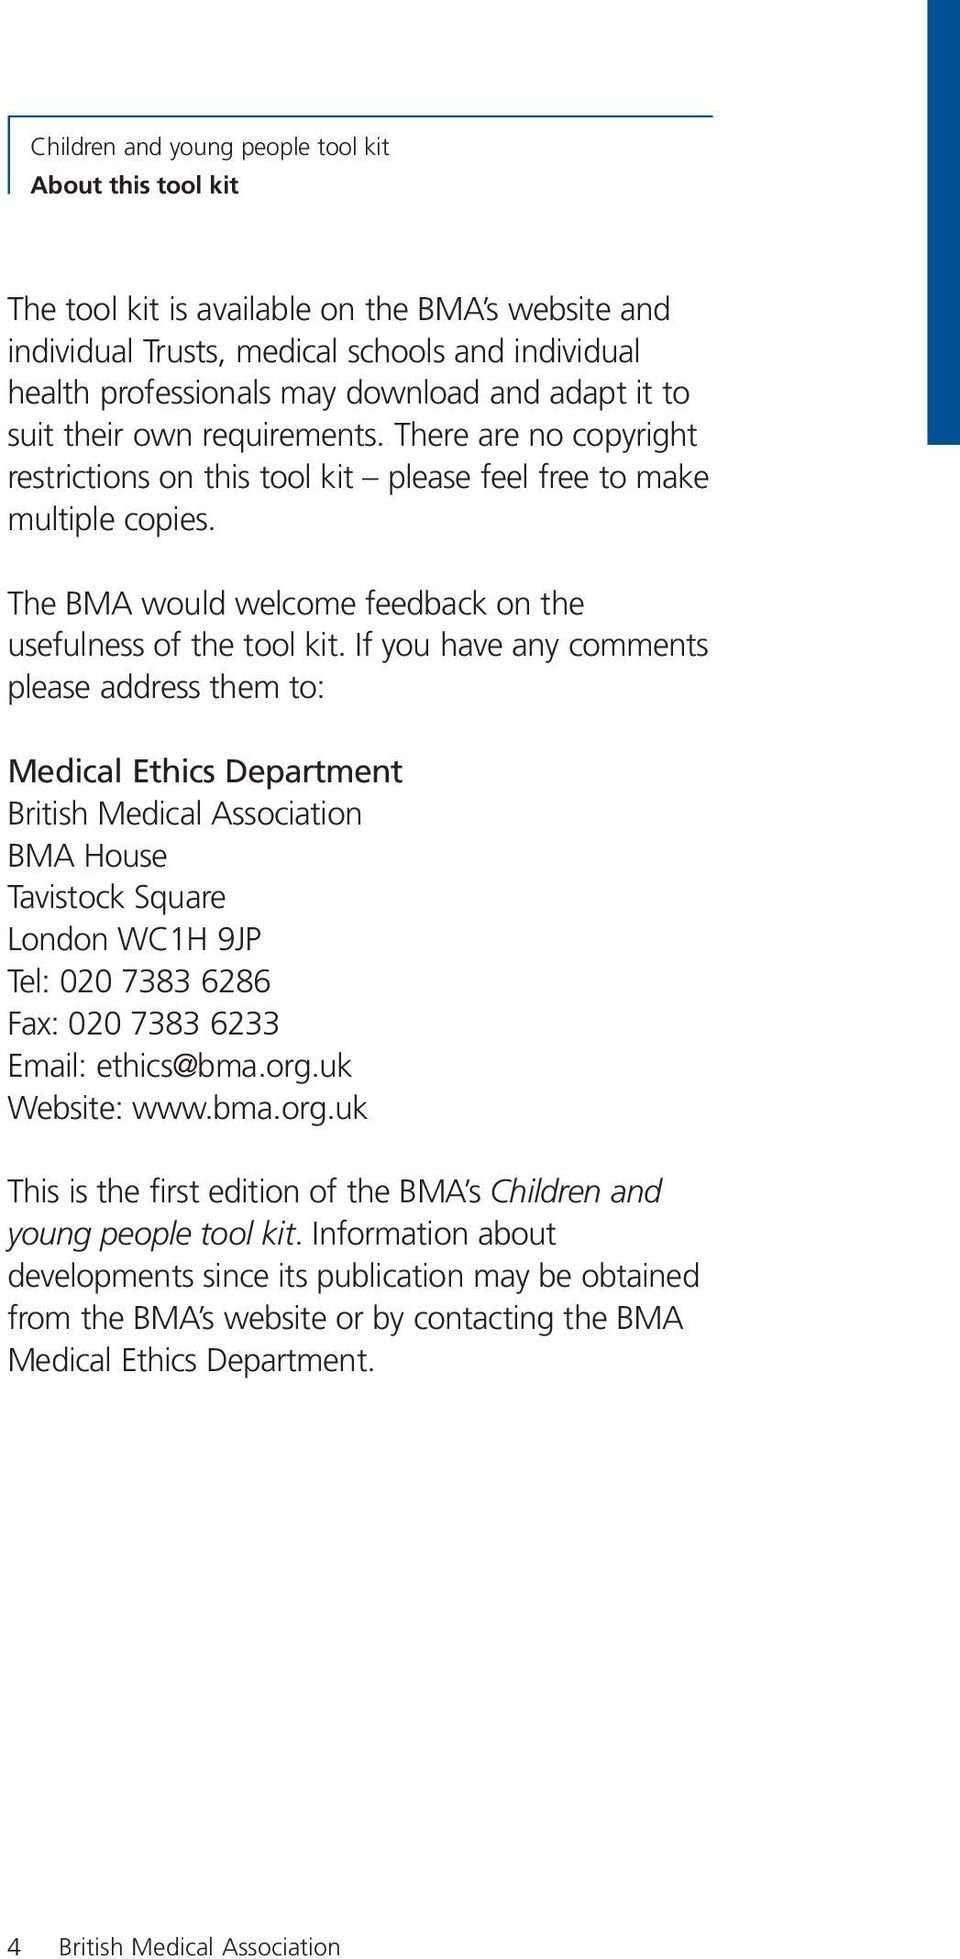 If you have any comments please address them to: Medical Ethics Department British Medical Association BMA House Tavistock Square London WC1H 9JP Tel: 020 7383 6286 Fax: 020 7383 6233 Email: